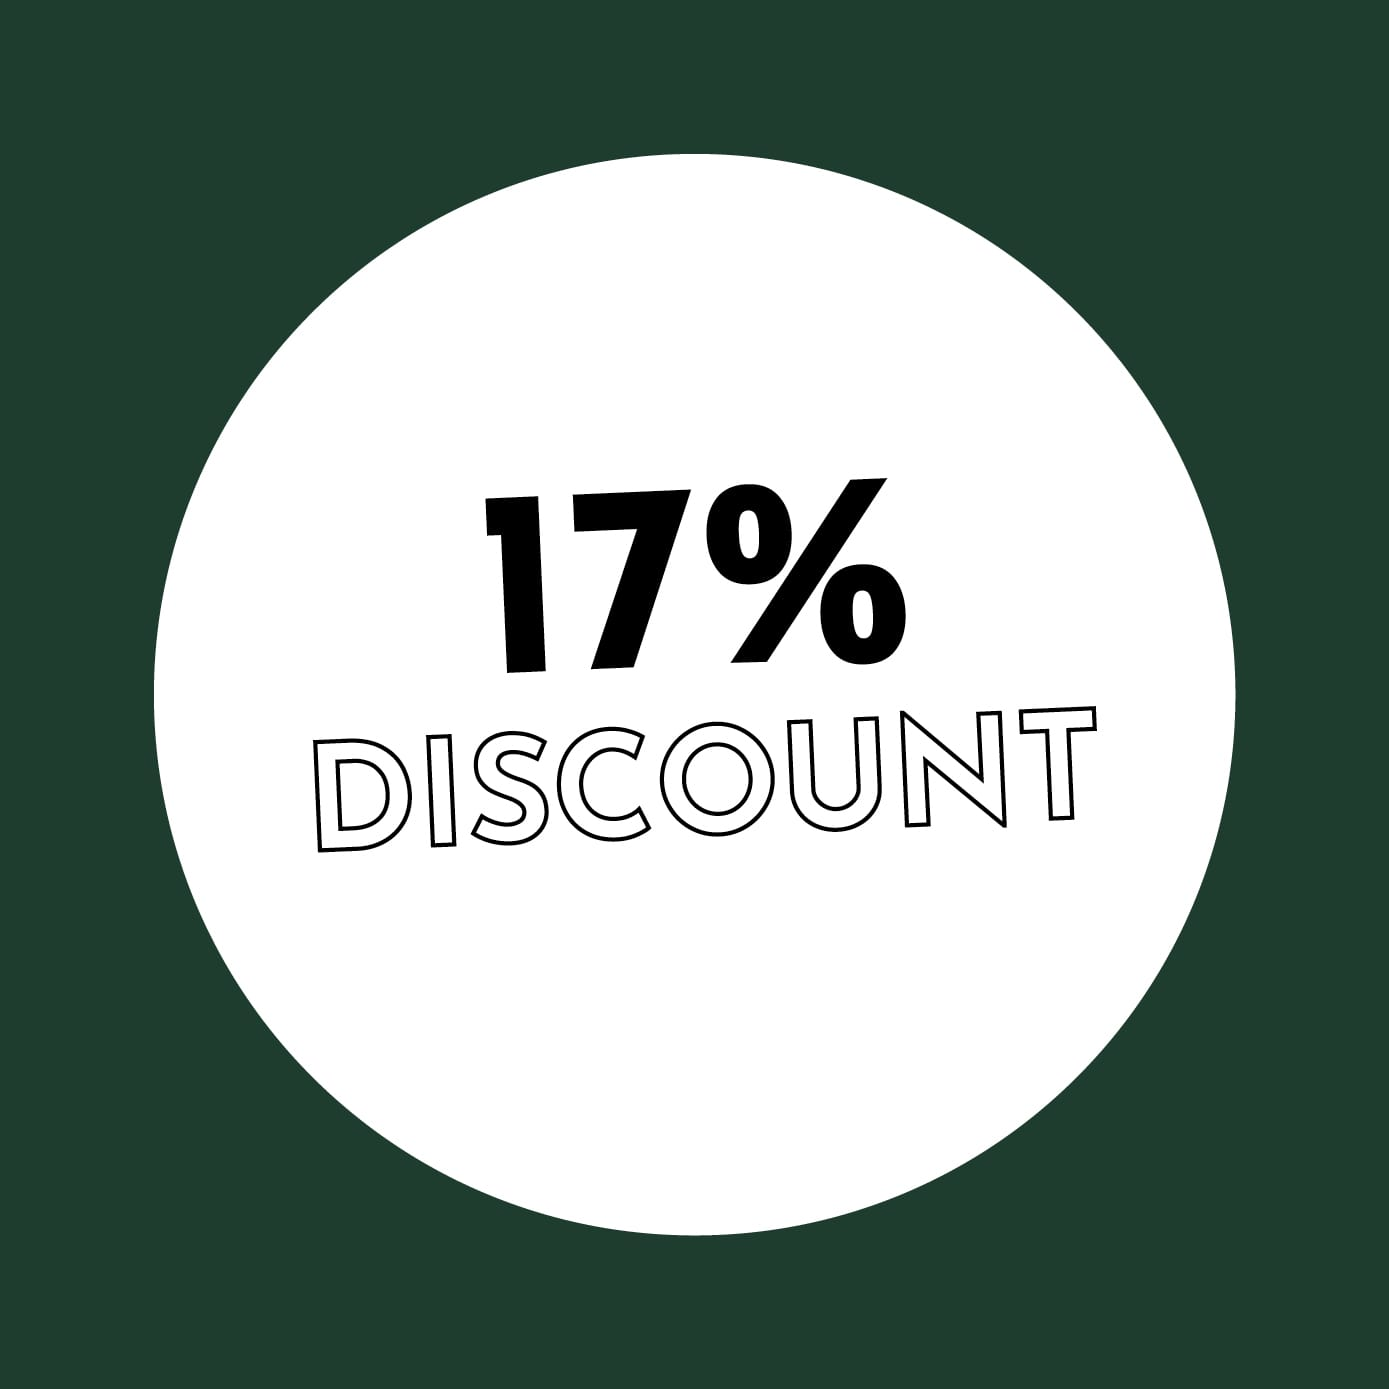 17% Discount